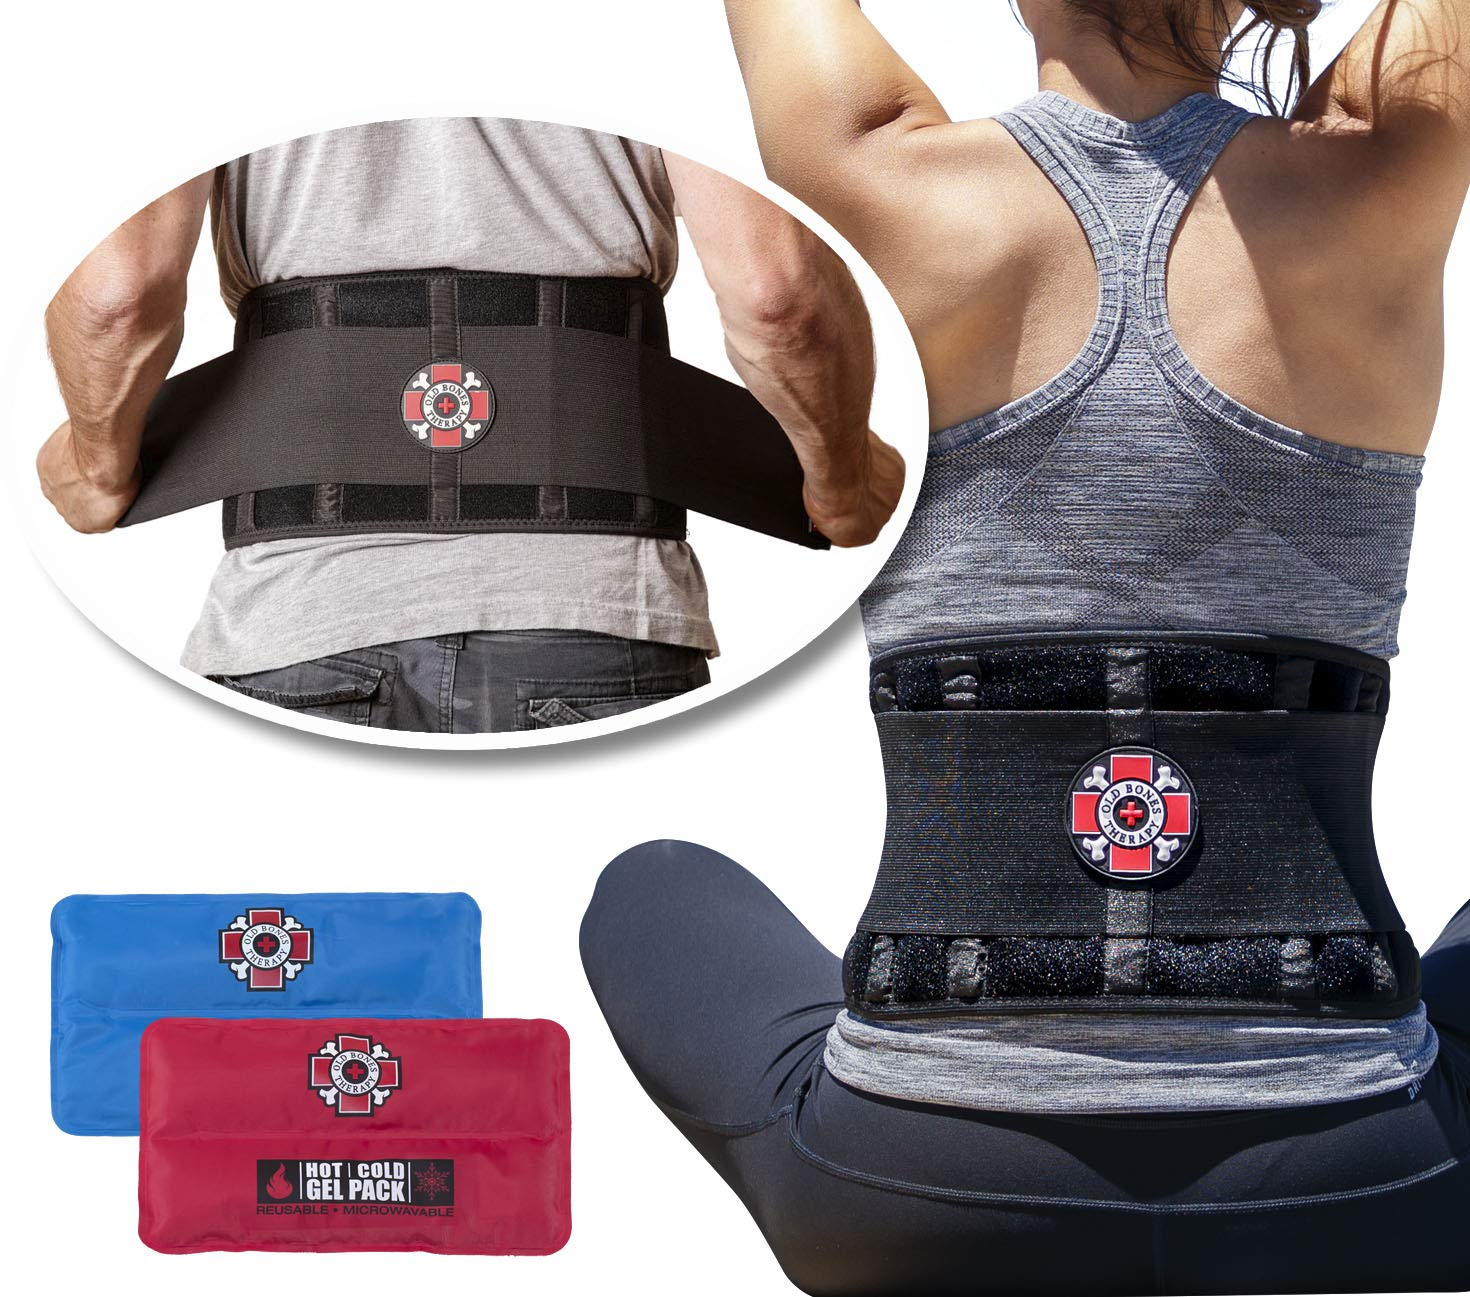 Back Brace with Ice Packs by Old Bones Therapy - Ice or Heat On The Go - Pain Relief for Lower Back Pain - Adjustable Back Support Belt + Lumbar Support for Men & Women (Back Brace + Gel Packs, XXL)